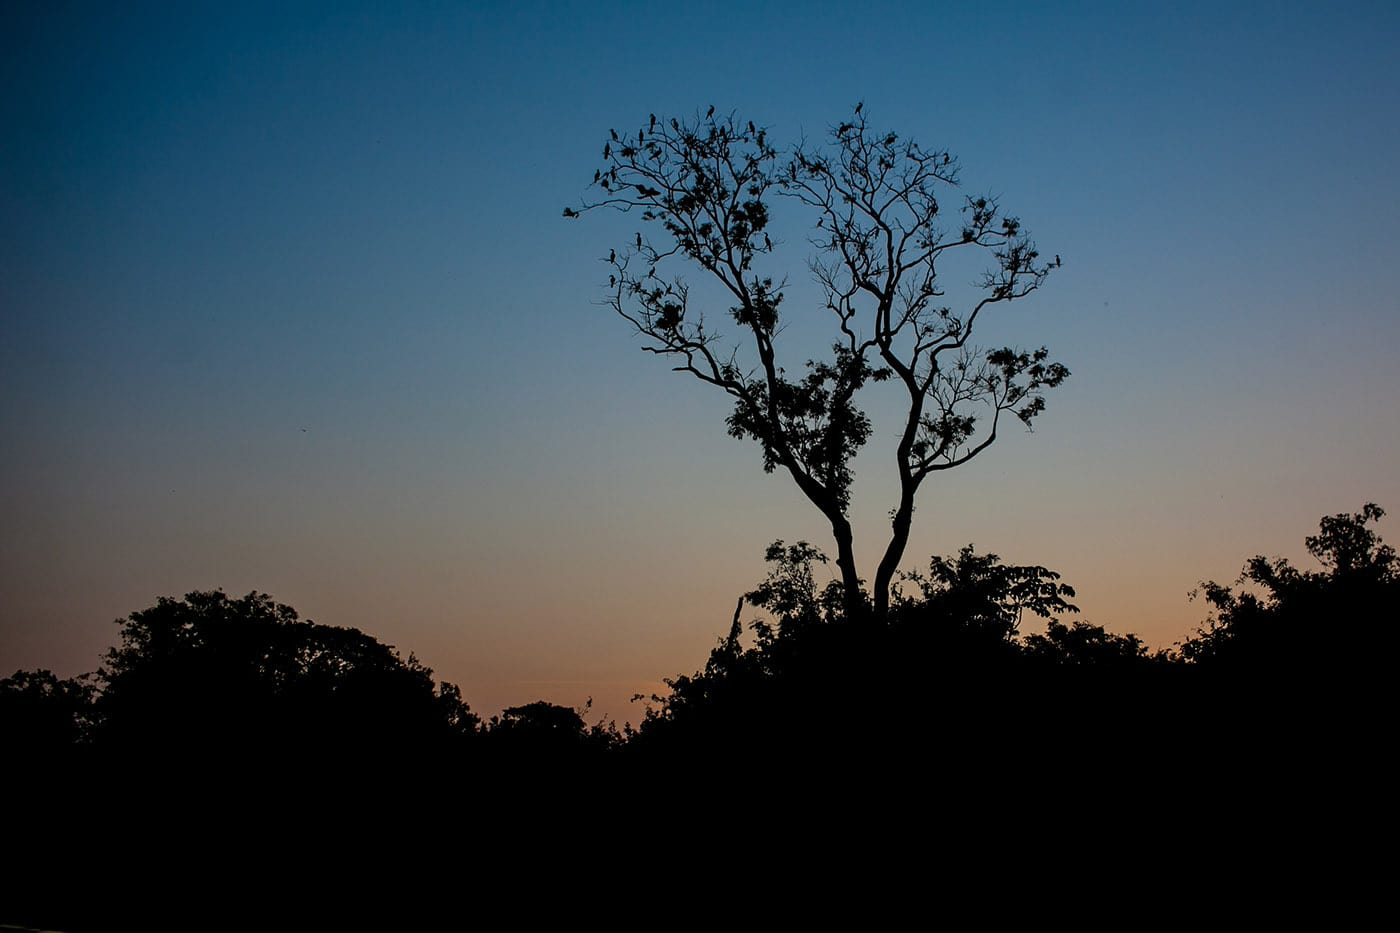 The Pampas in the Bolivian Amazon